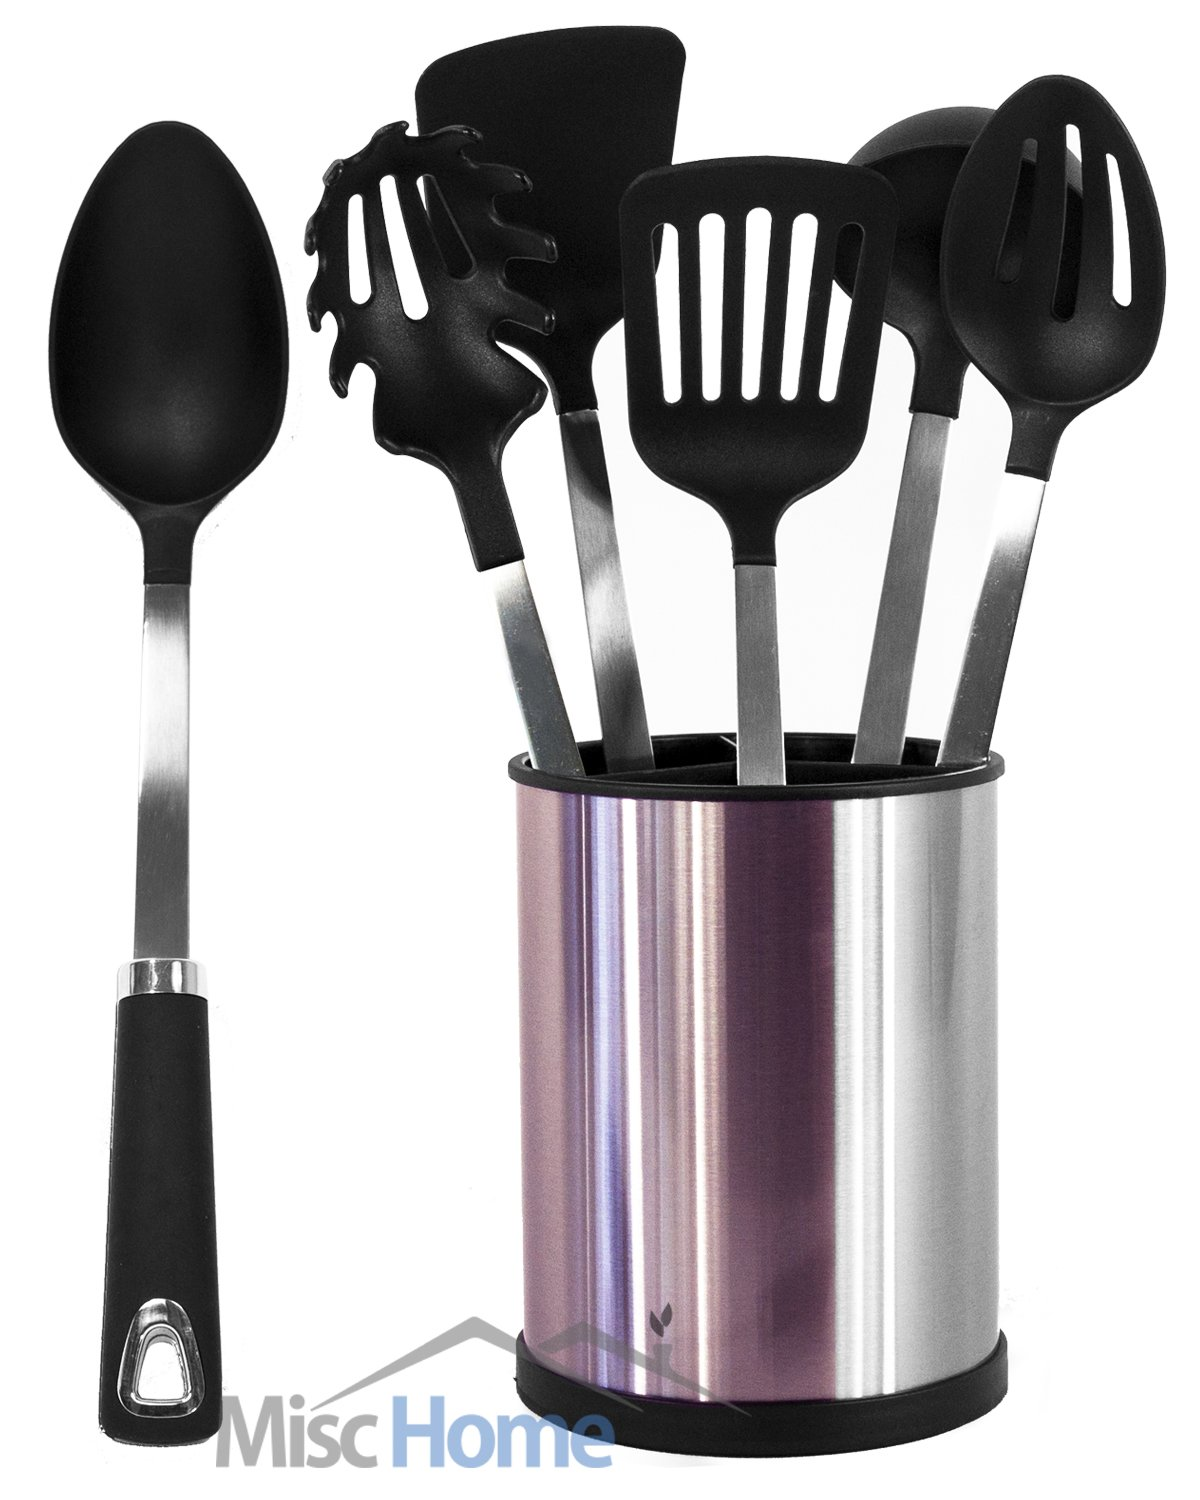 Kitchen Tool Set Of 6pcs Sj Of Misc Home 6 Piece Stainless Steel Kitchen Utensil Set With